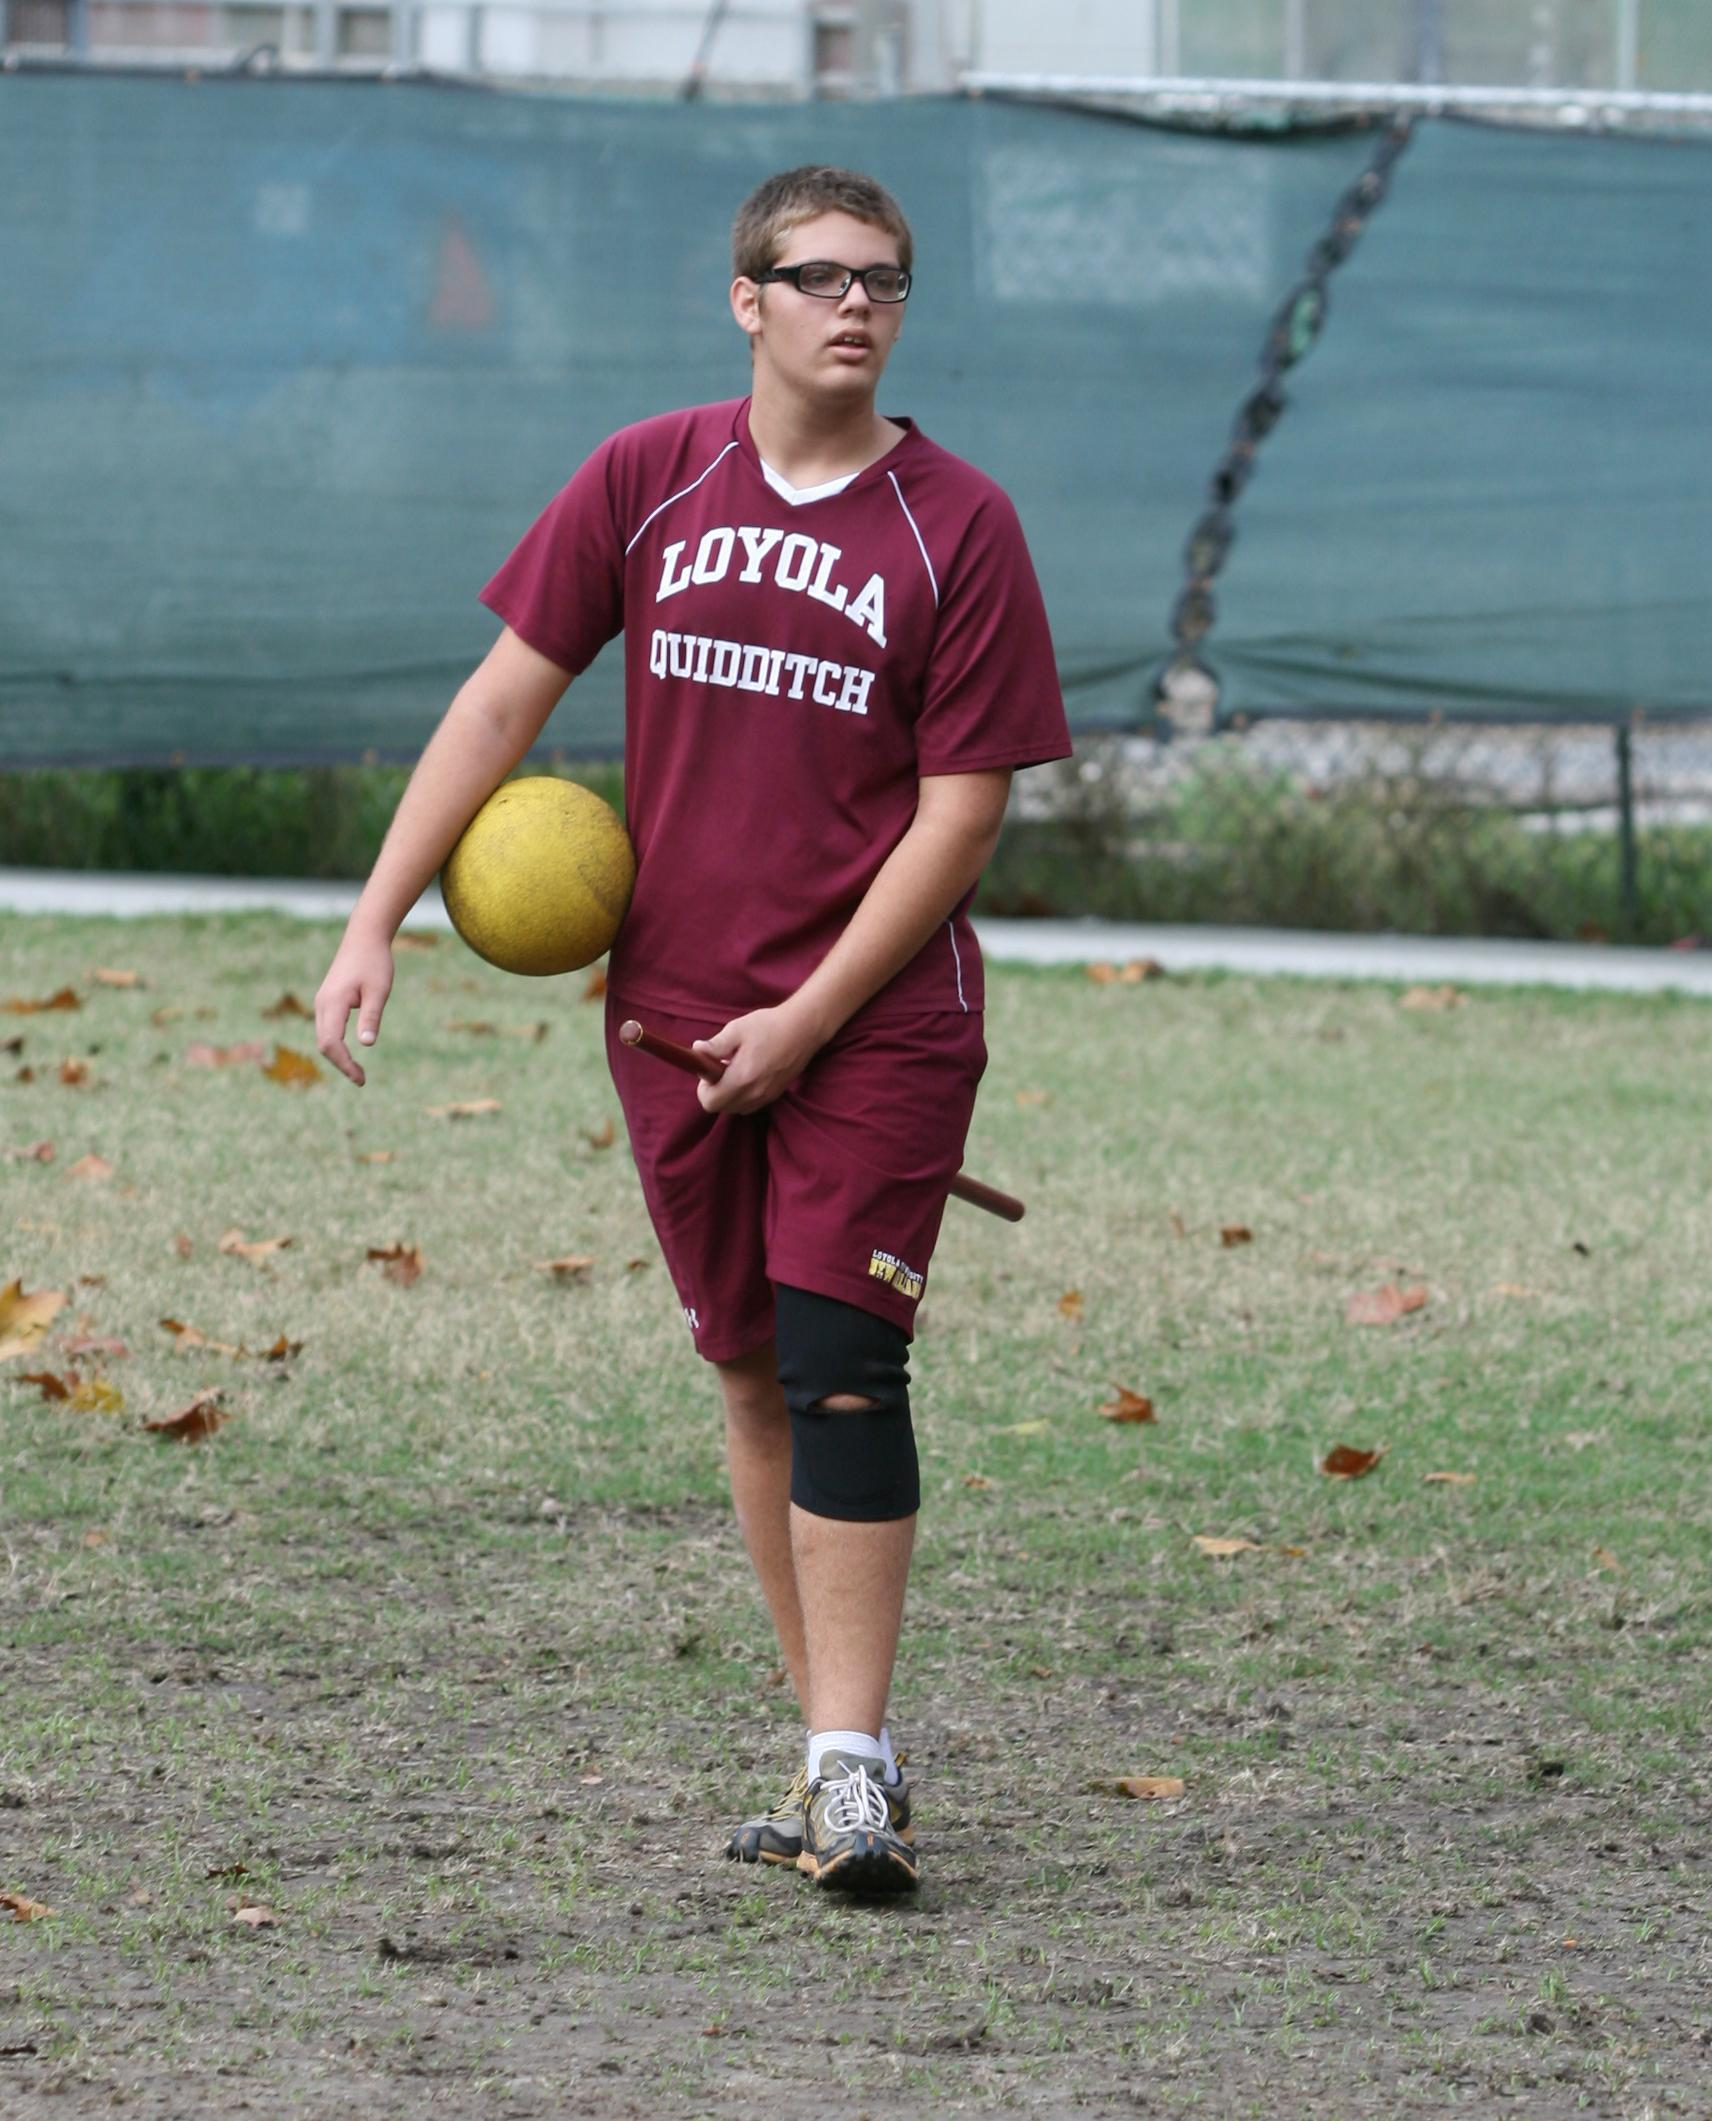 Tad Walters, history sophomore and Quidditch player.